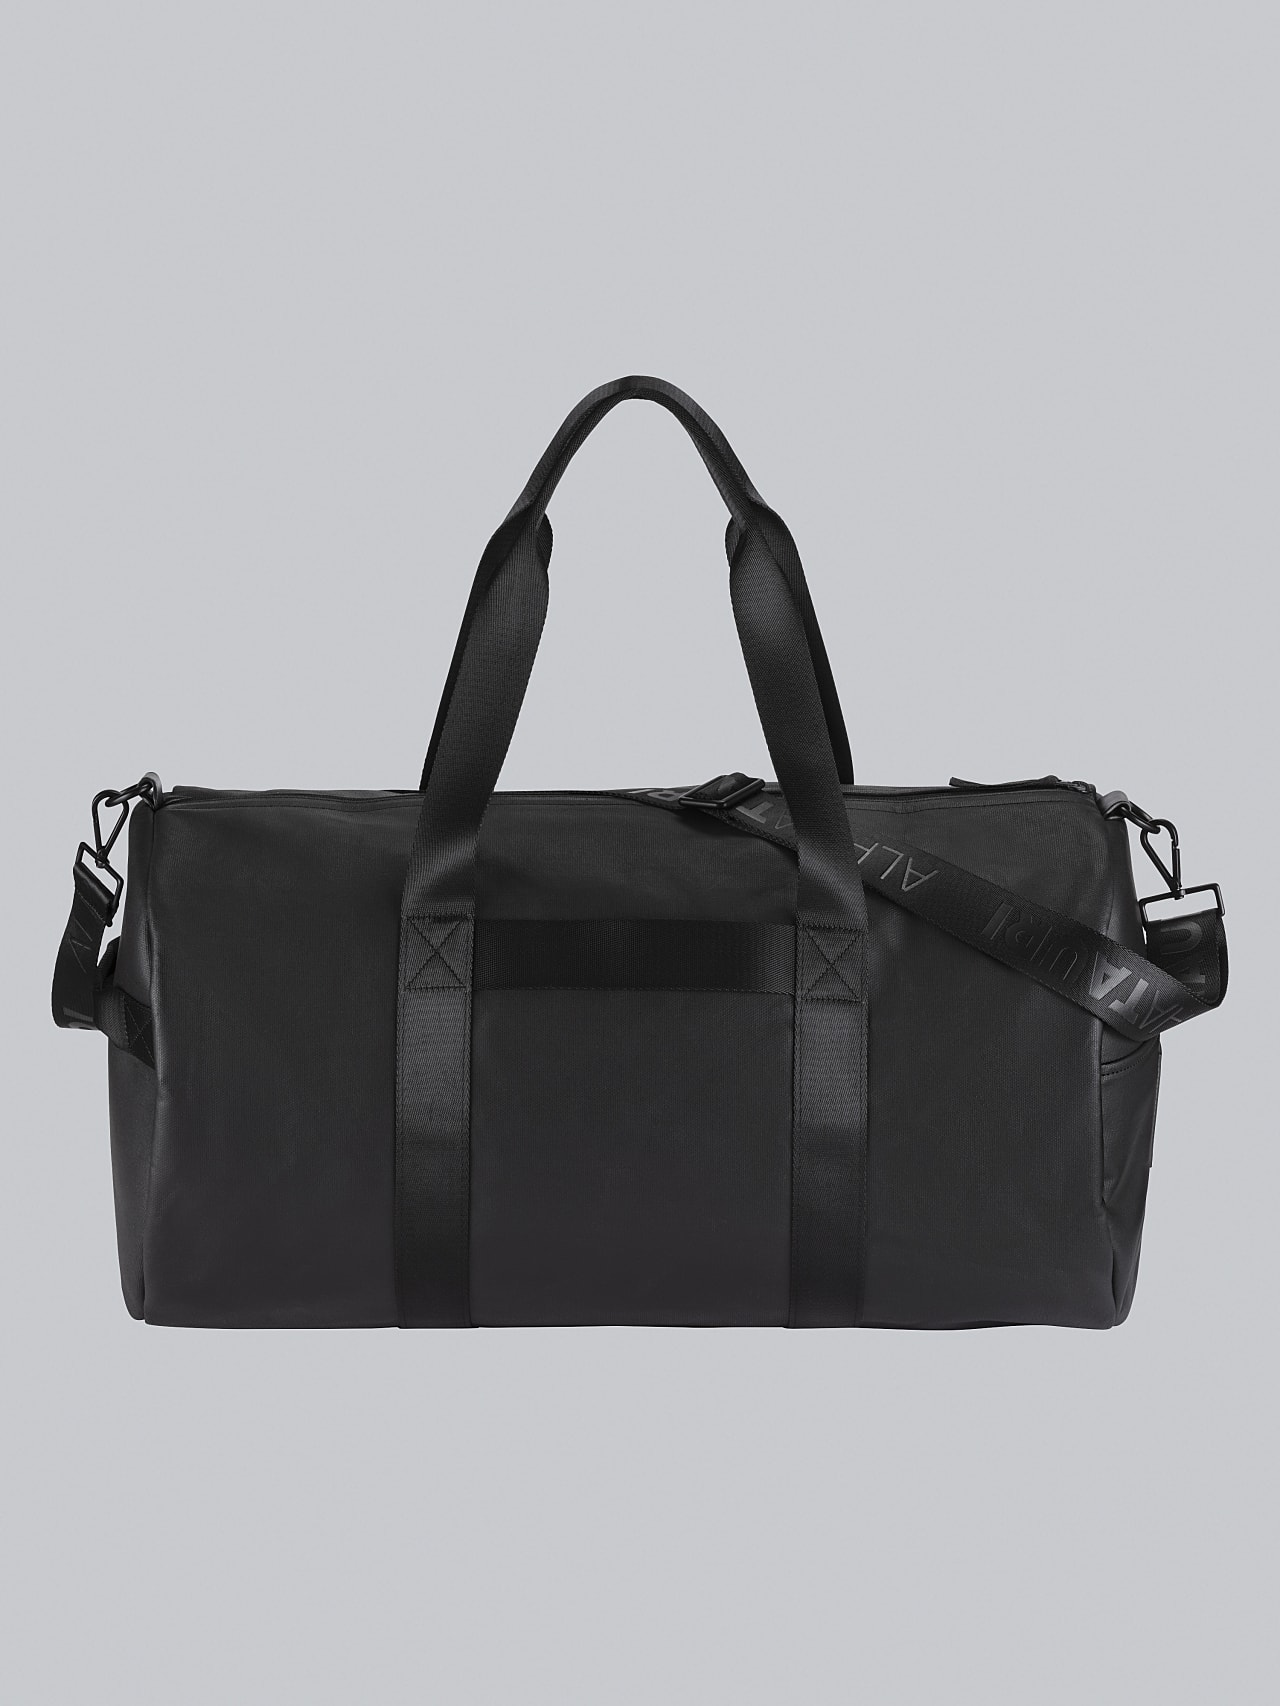 AWEE V4.Y5.02 Water-Repellent Duffle Bag dark grey / anthracite Left Alpha Tauri